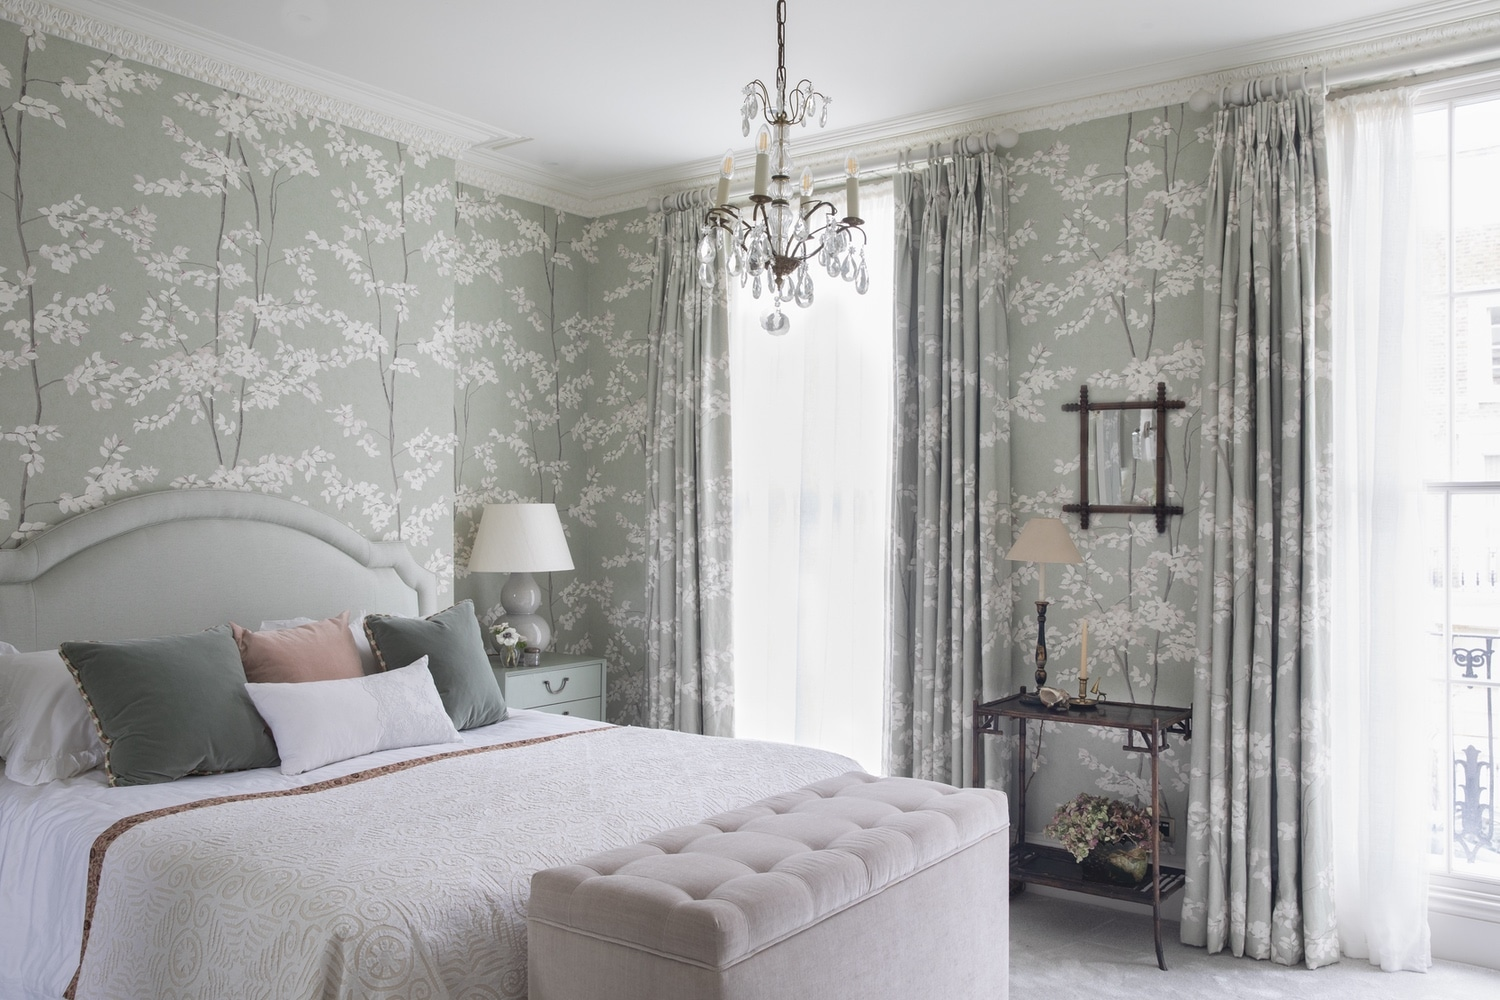 Matching patterned wallpaper & fabric in our Primrose Hill Victorian house project